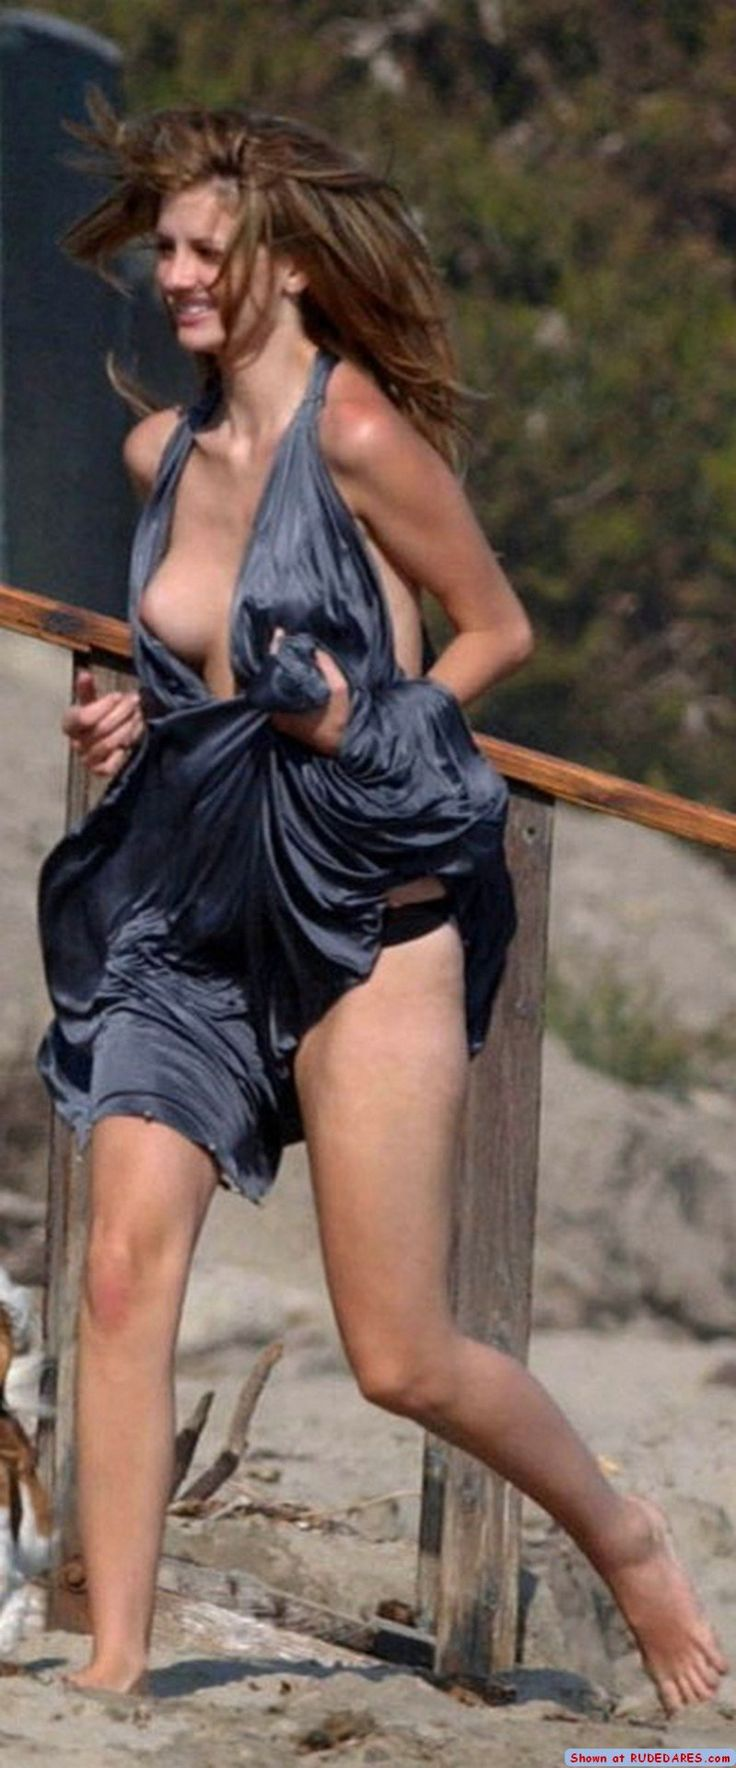 OOPS! OH DEAR! This poor girl has a nip slip and a panty peek!